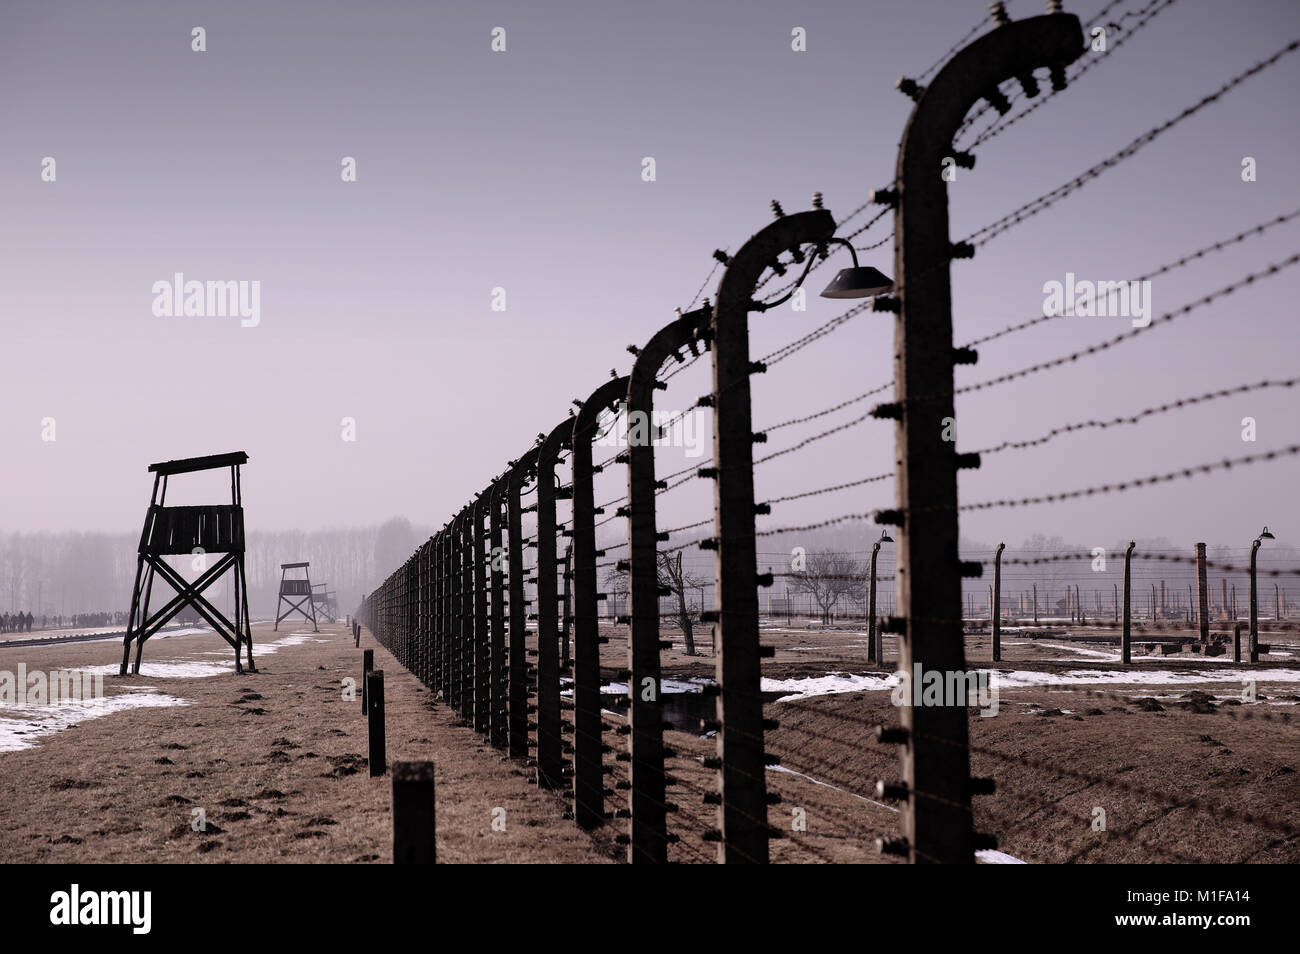 Electric fencing and watchtowers surrounding Auschwitz II Birkenhau former extermination camp. - Stock Image